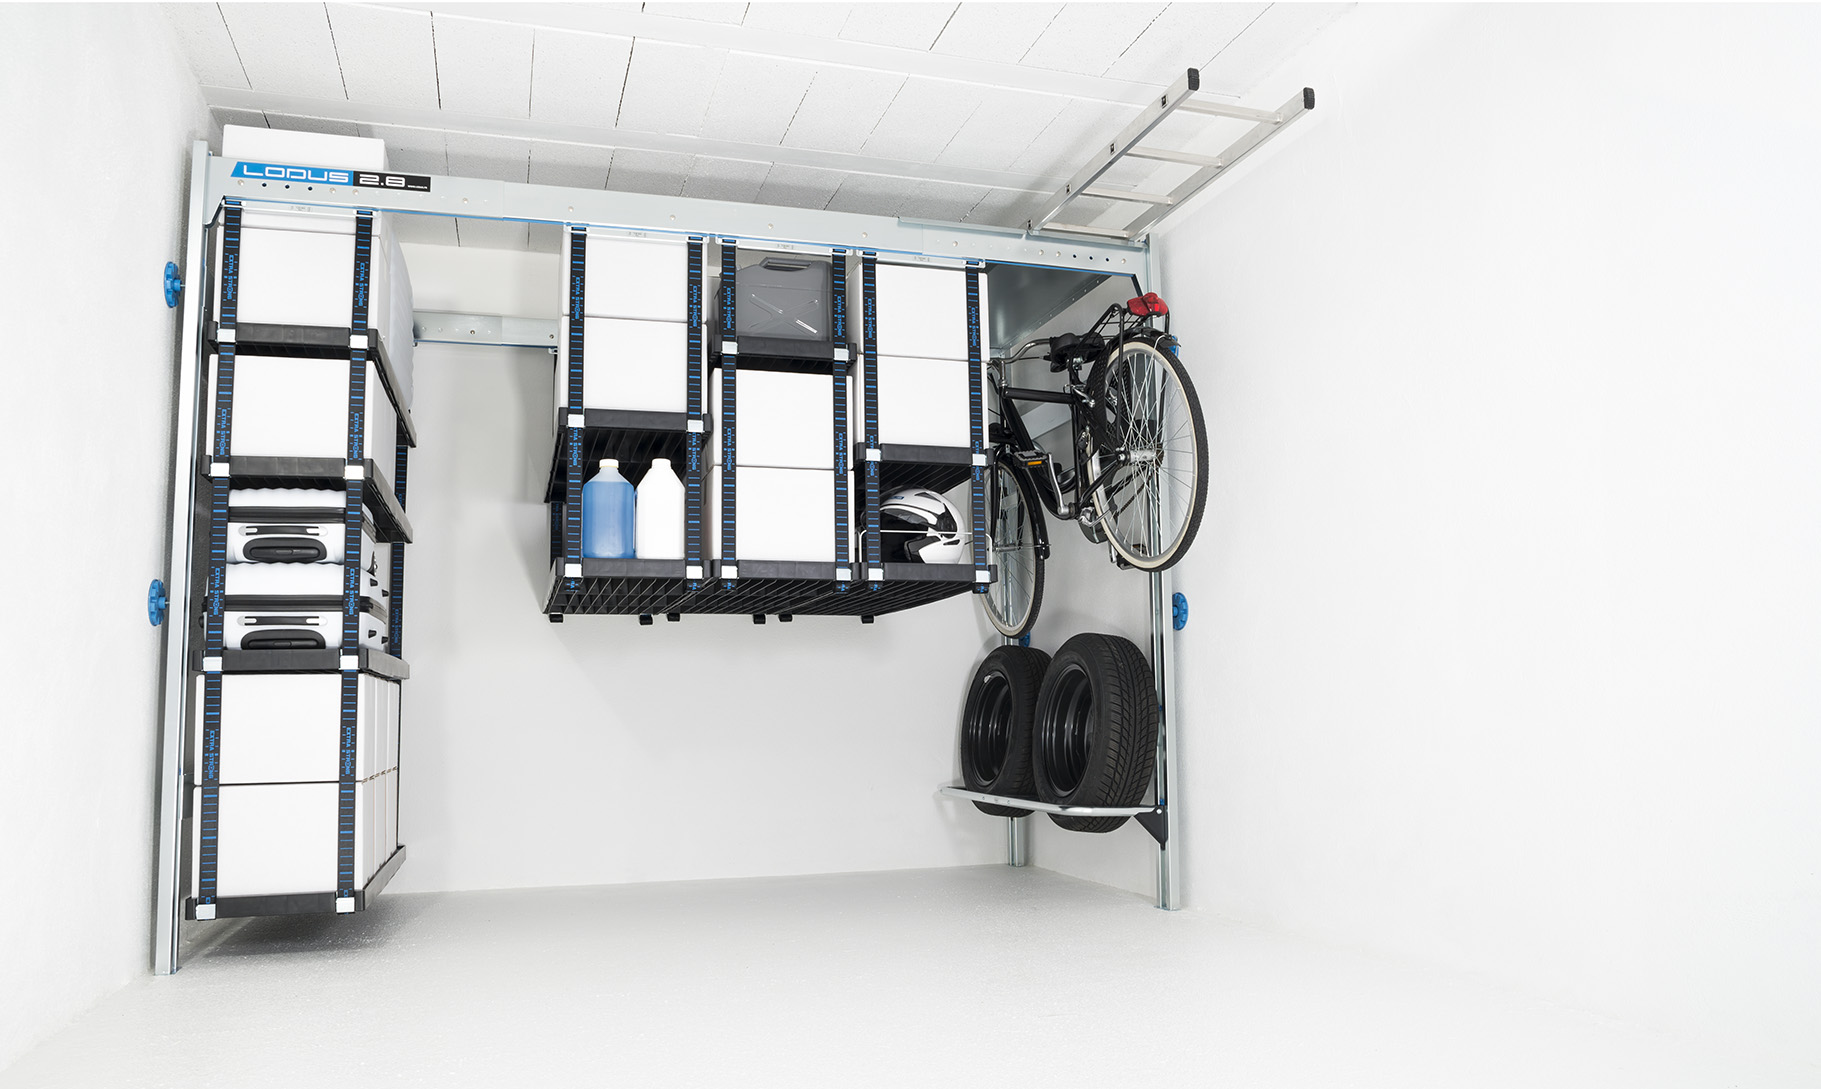 Amenagement et agencement garage am nager son garage lodus - Systeme de rangement pour garage ...